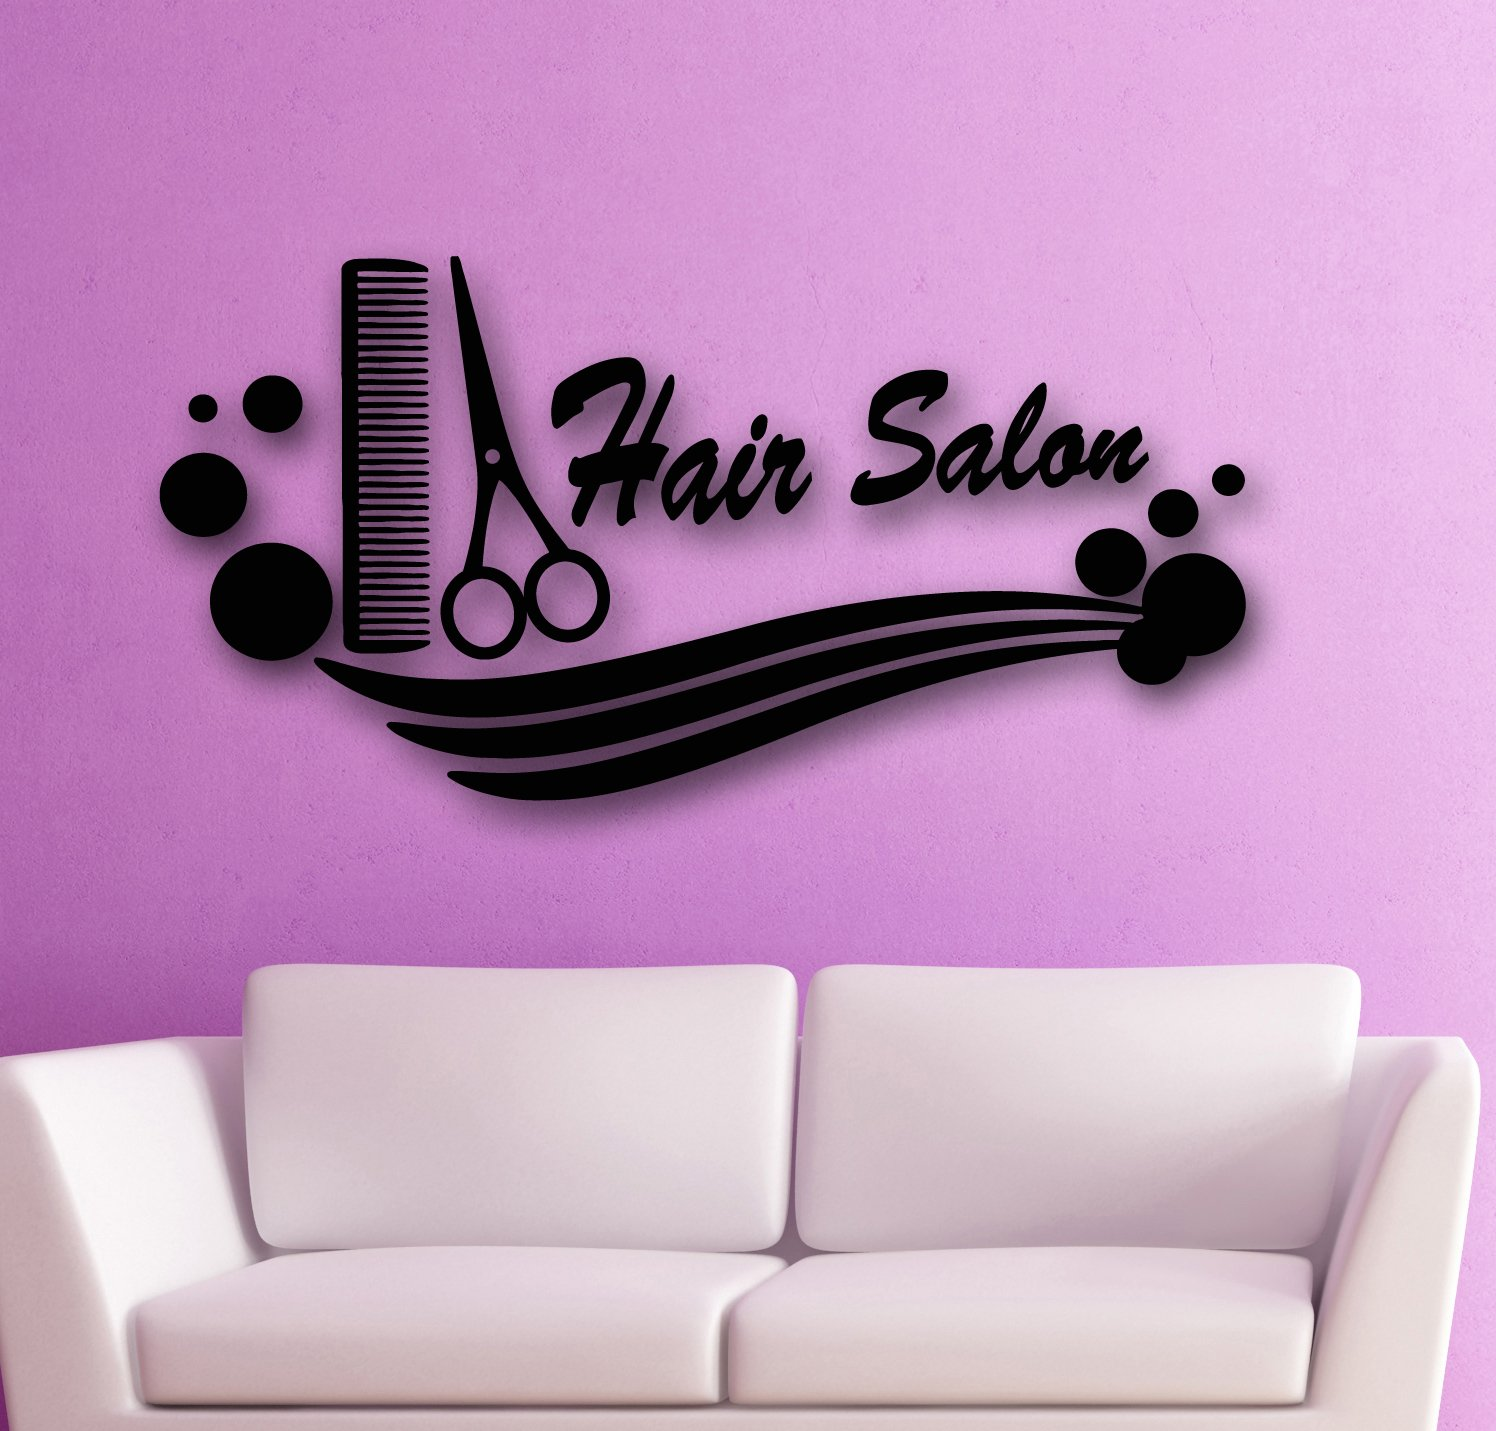 Wall Stickers Vinyl Decal Hair Salon Barbershop Scissors Beauty Comb Spa (i633) M 35 in X 17.5 in